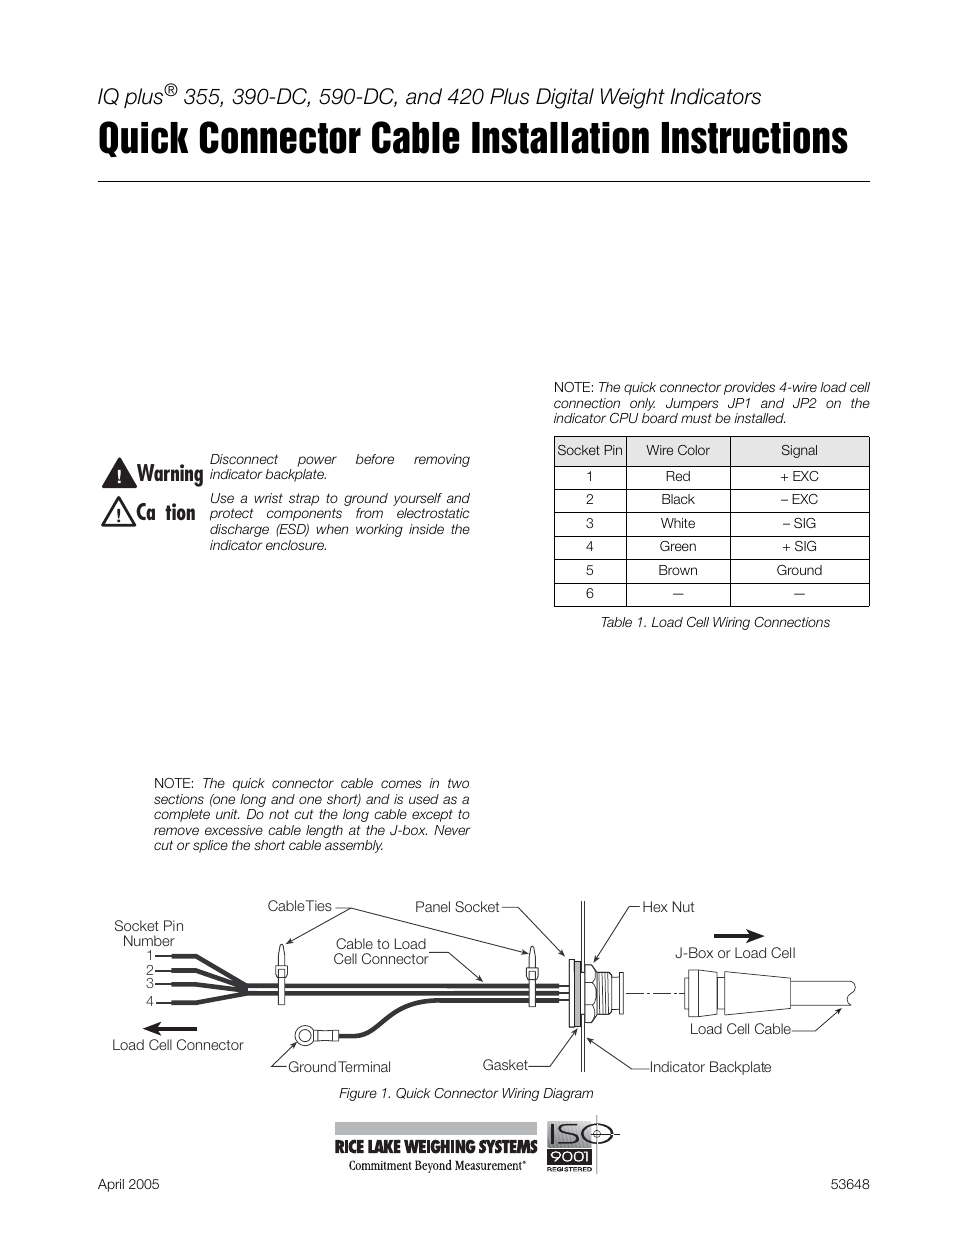 Rice Lake IQ plus 355 - 390-DC - 590-DC & 420 Plus Quick Connector Cable  User Manual | 1 page | Also for: 420 Plus Digital Weight Indicator - IQ  plus 355 ...